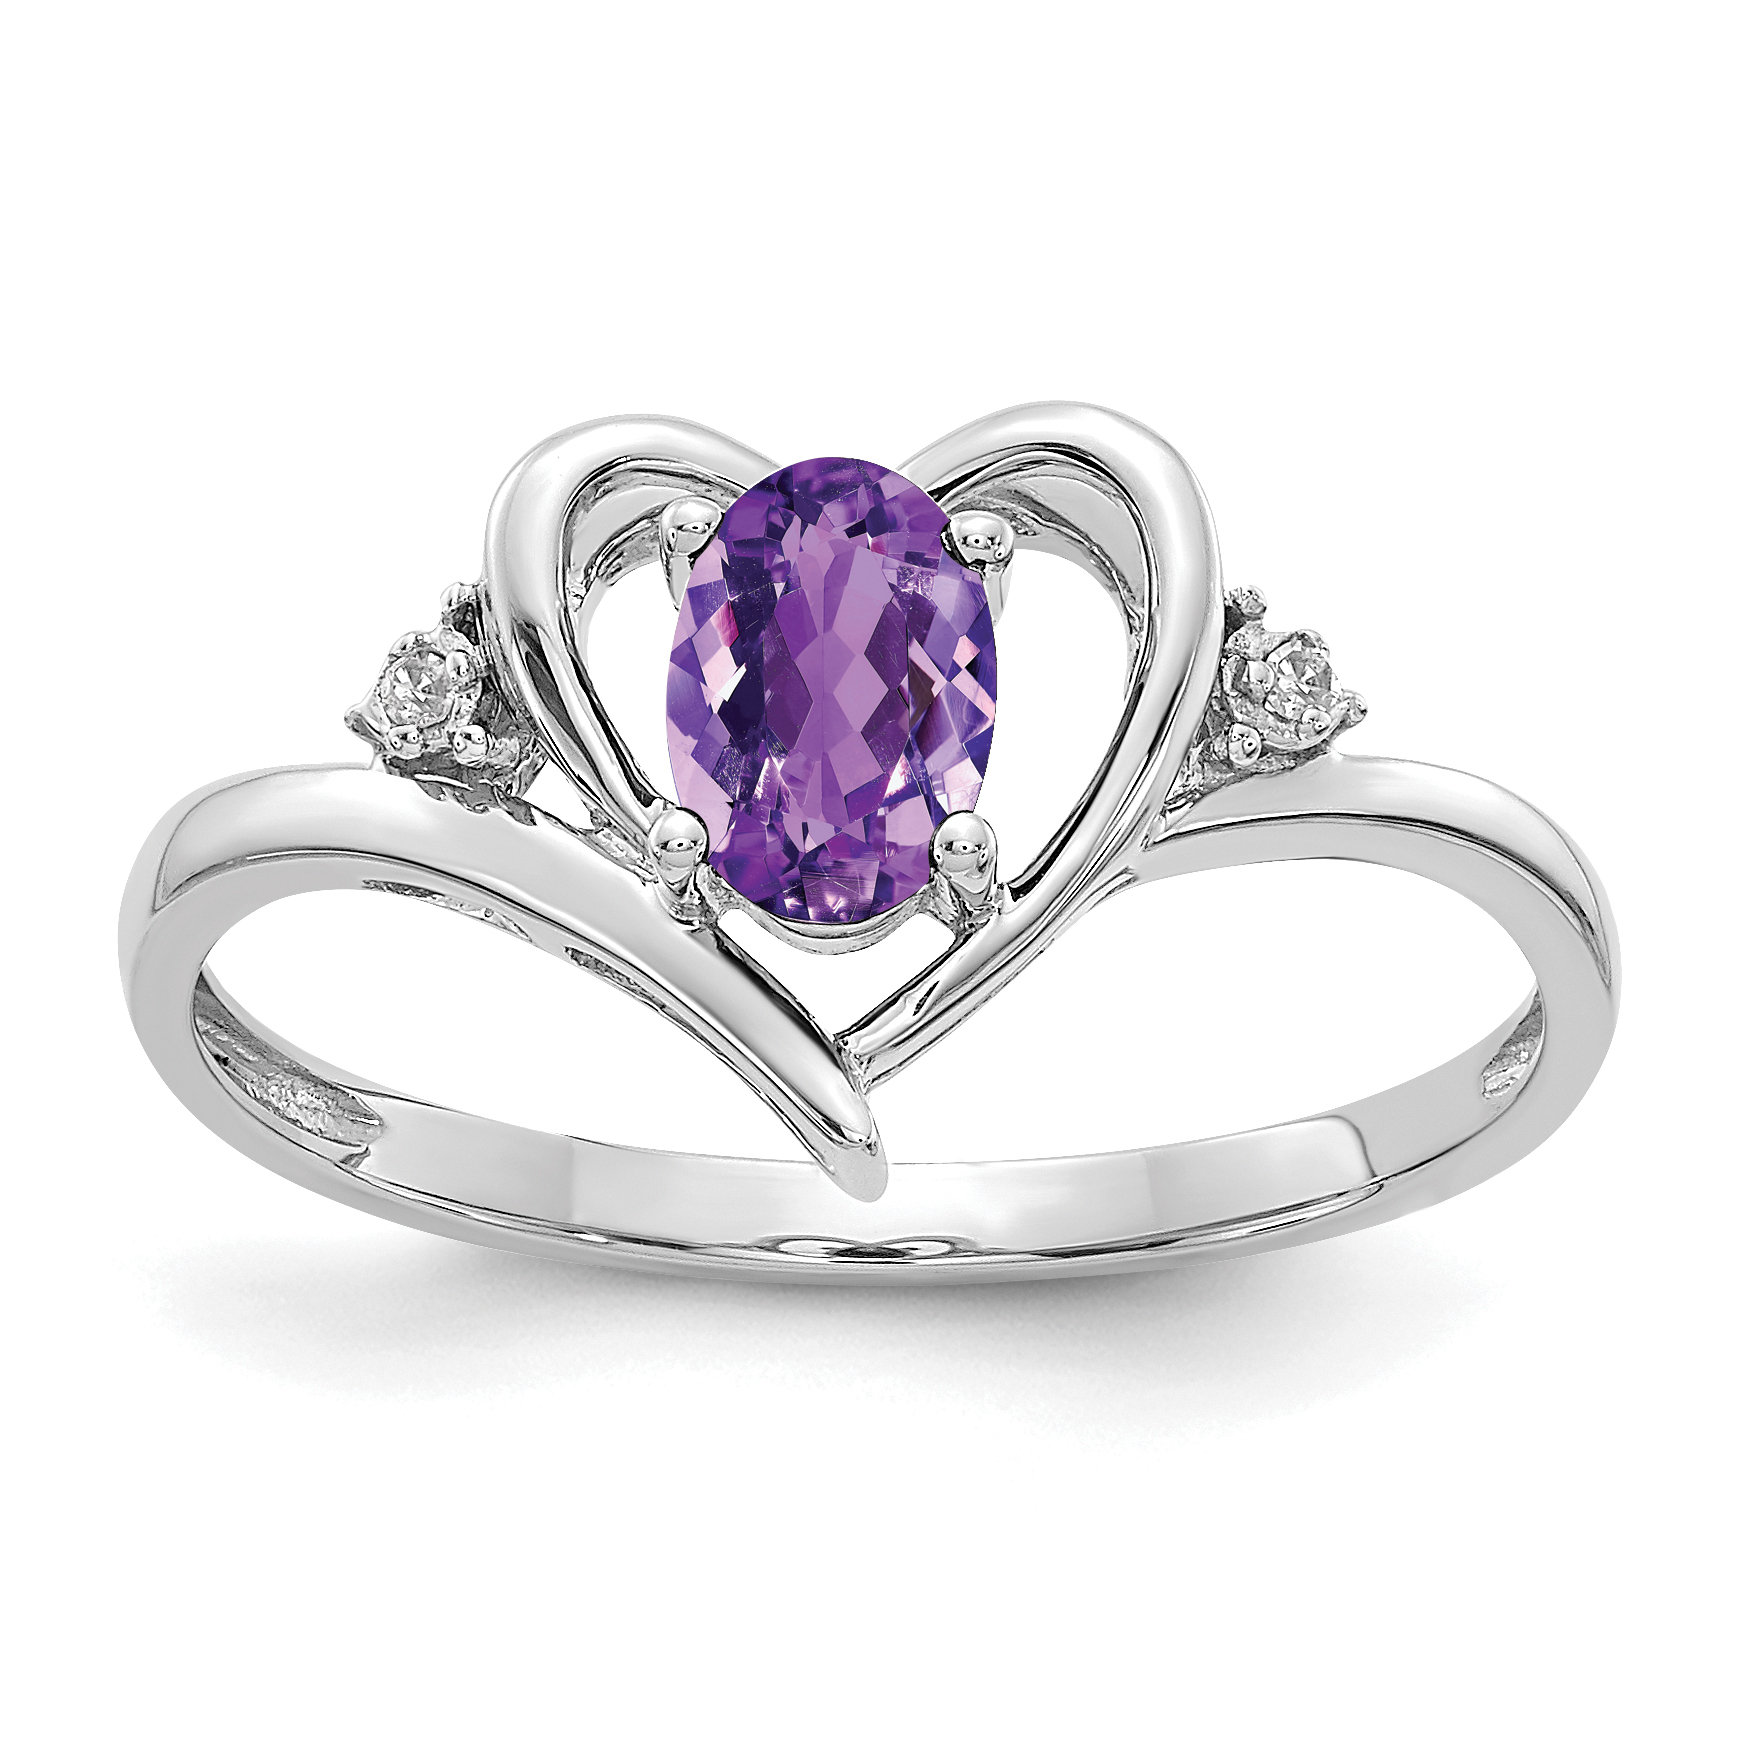 14k White Gold Amethyst Diamond Ring by CoutureJewelers